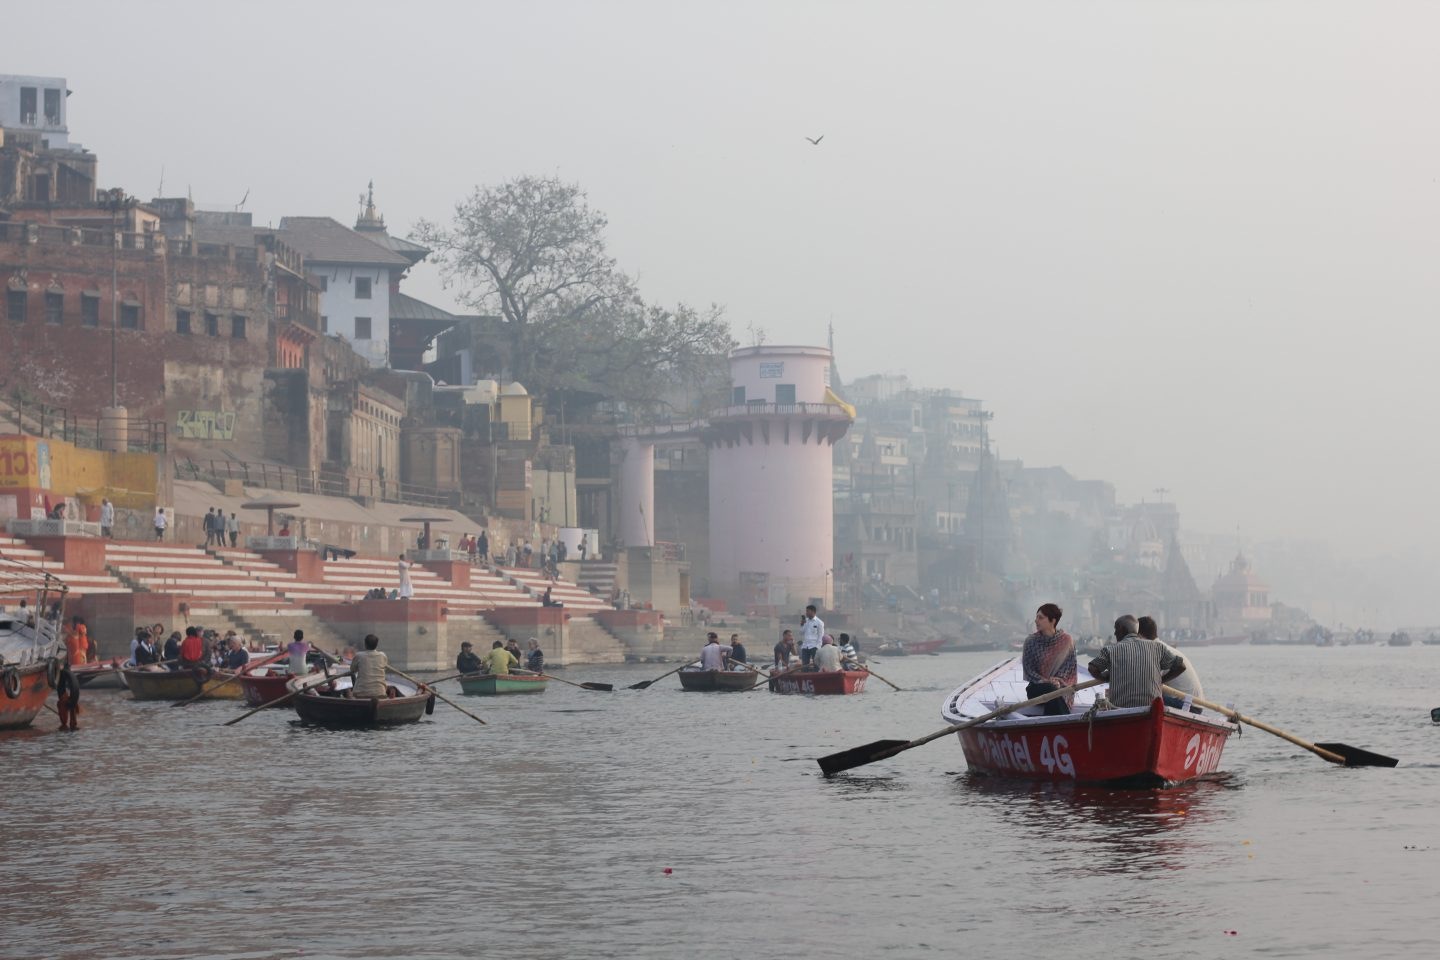 Postcards from India – Varanasi